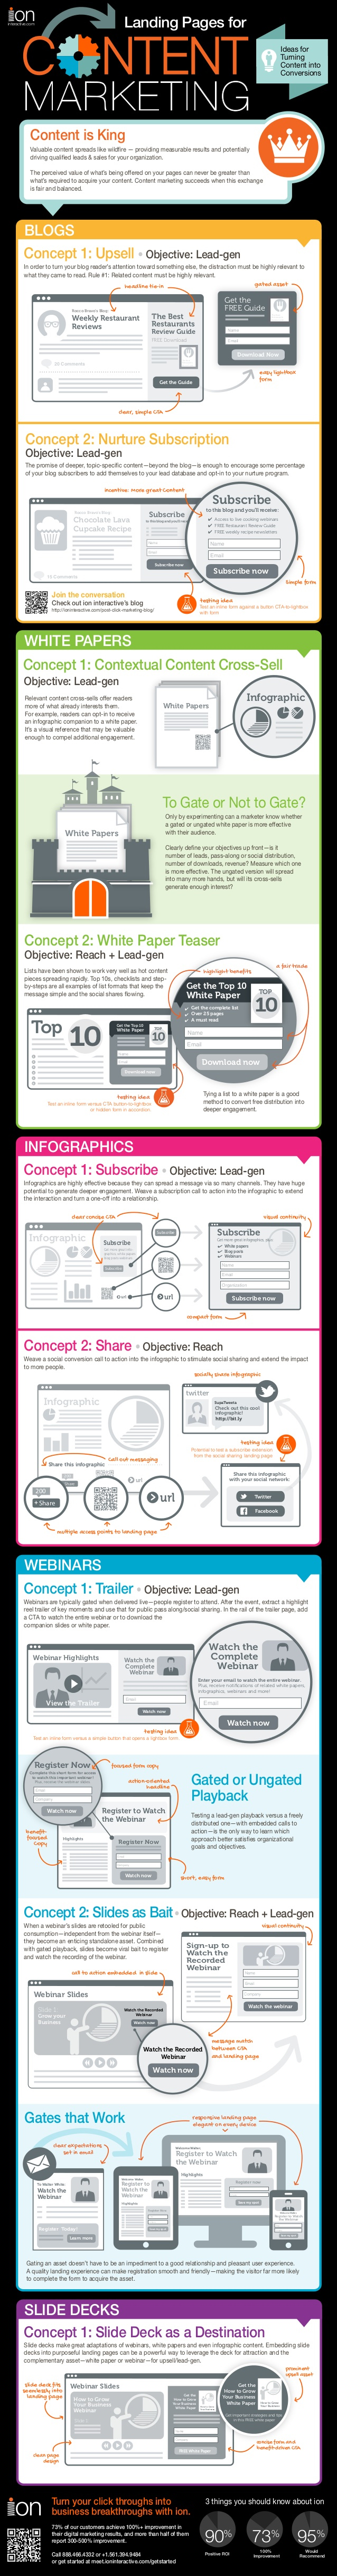 Landing pages for content marketing infographic